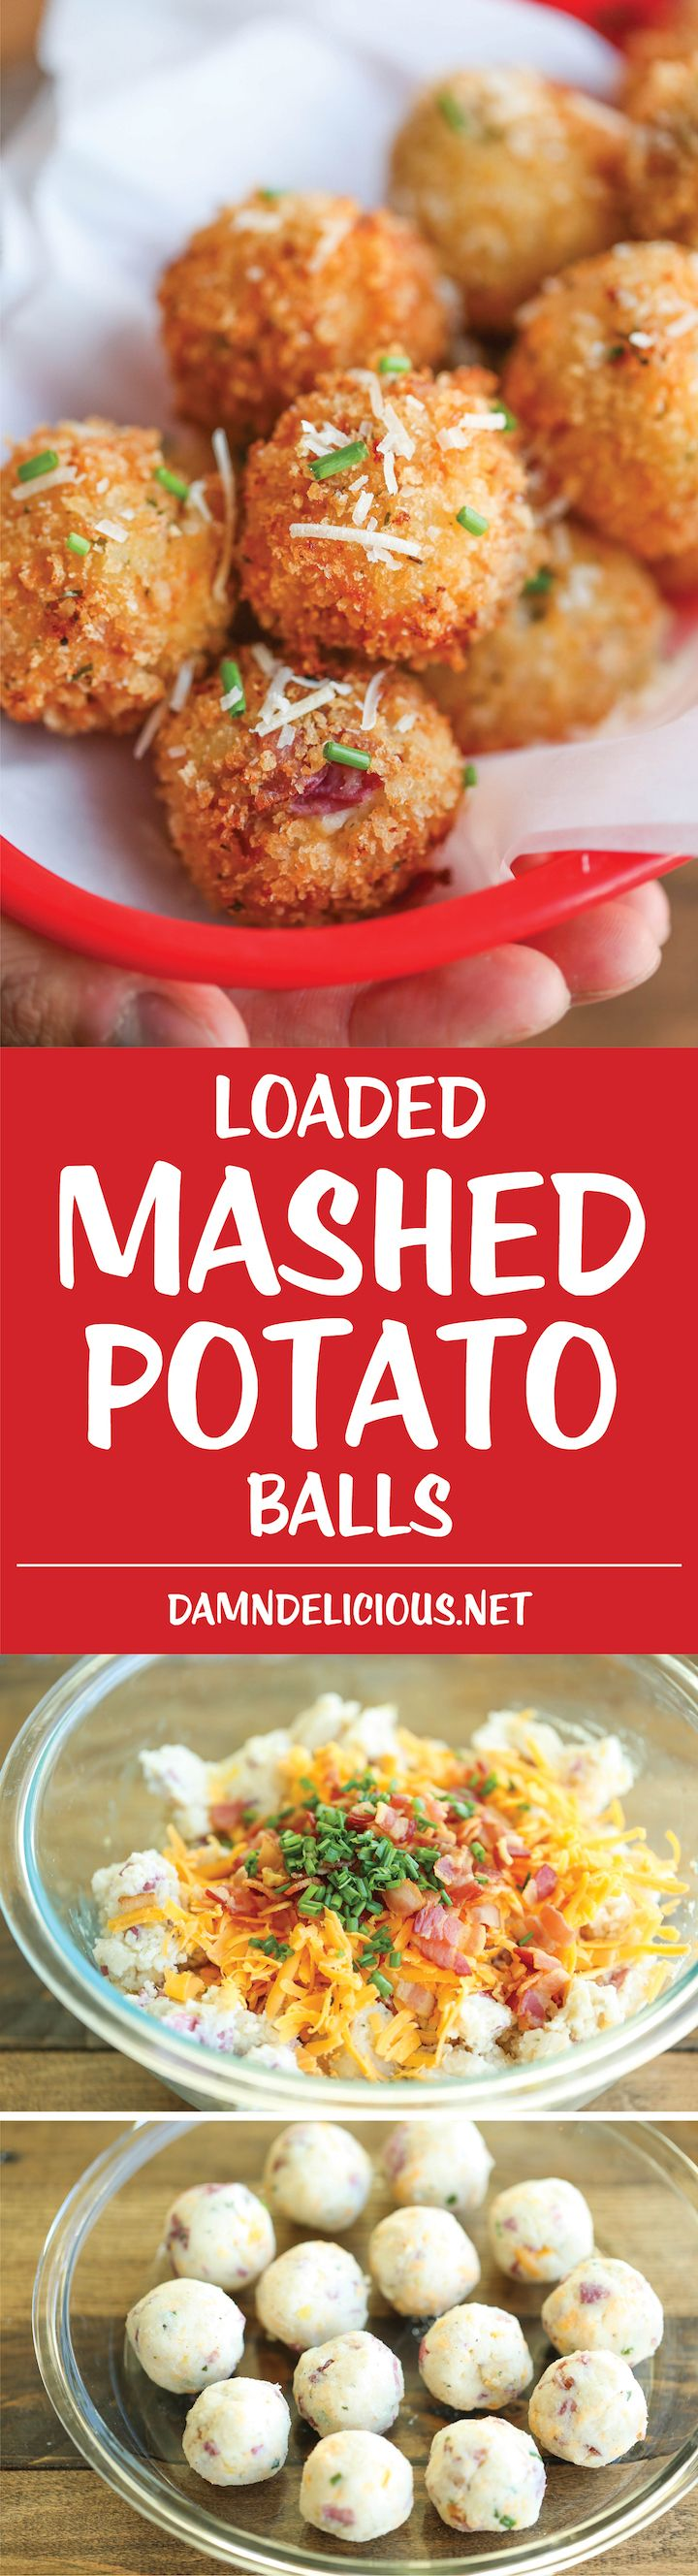 Mashed Potato Balls - What do you do with leftover mashed potatoes ...